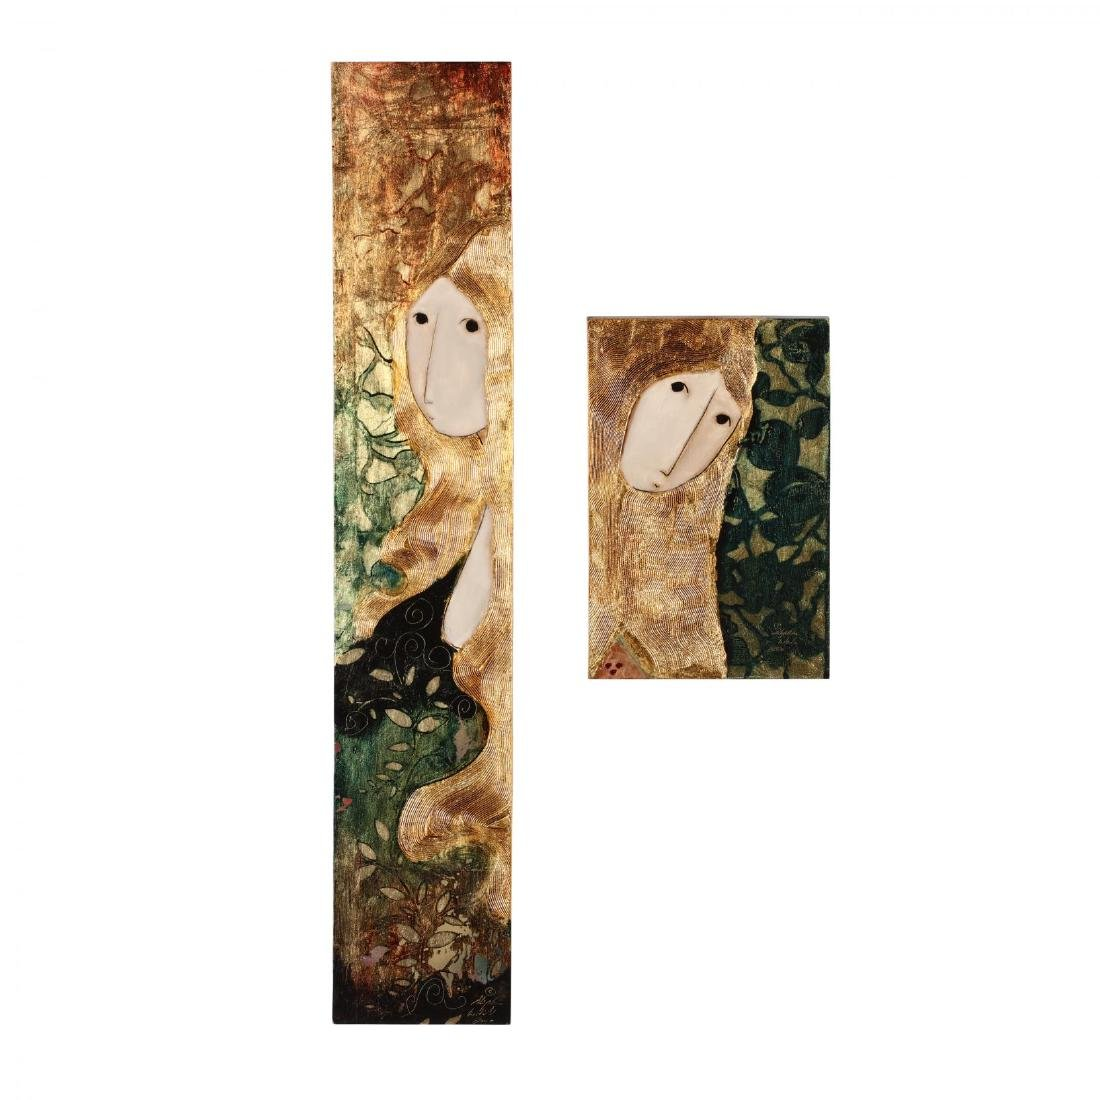 Stephen White (NC), Woman in Gold & Green